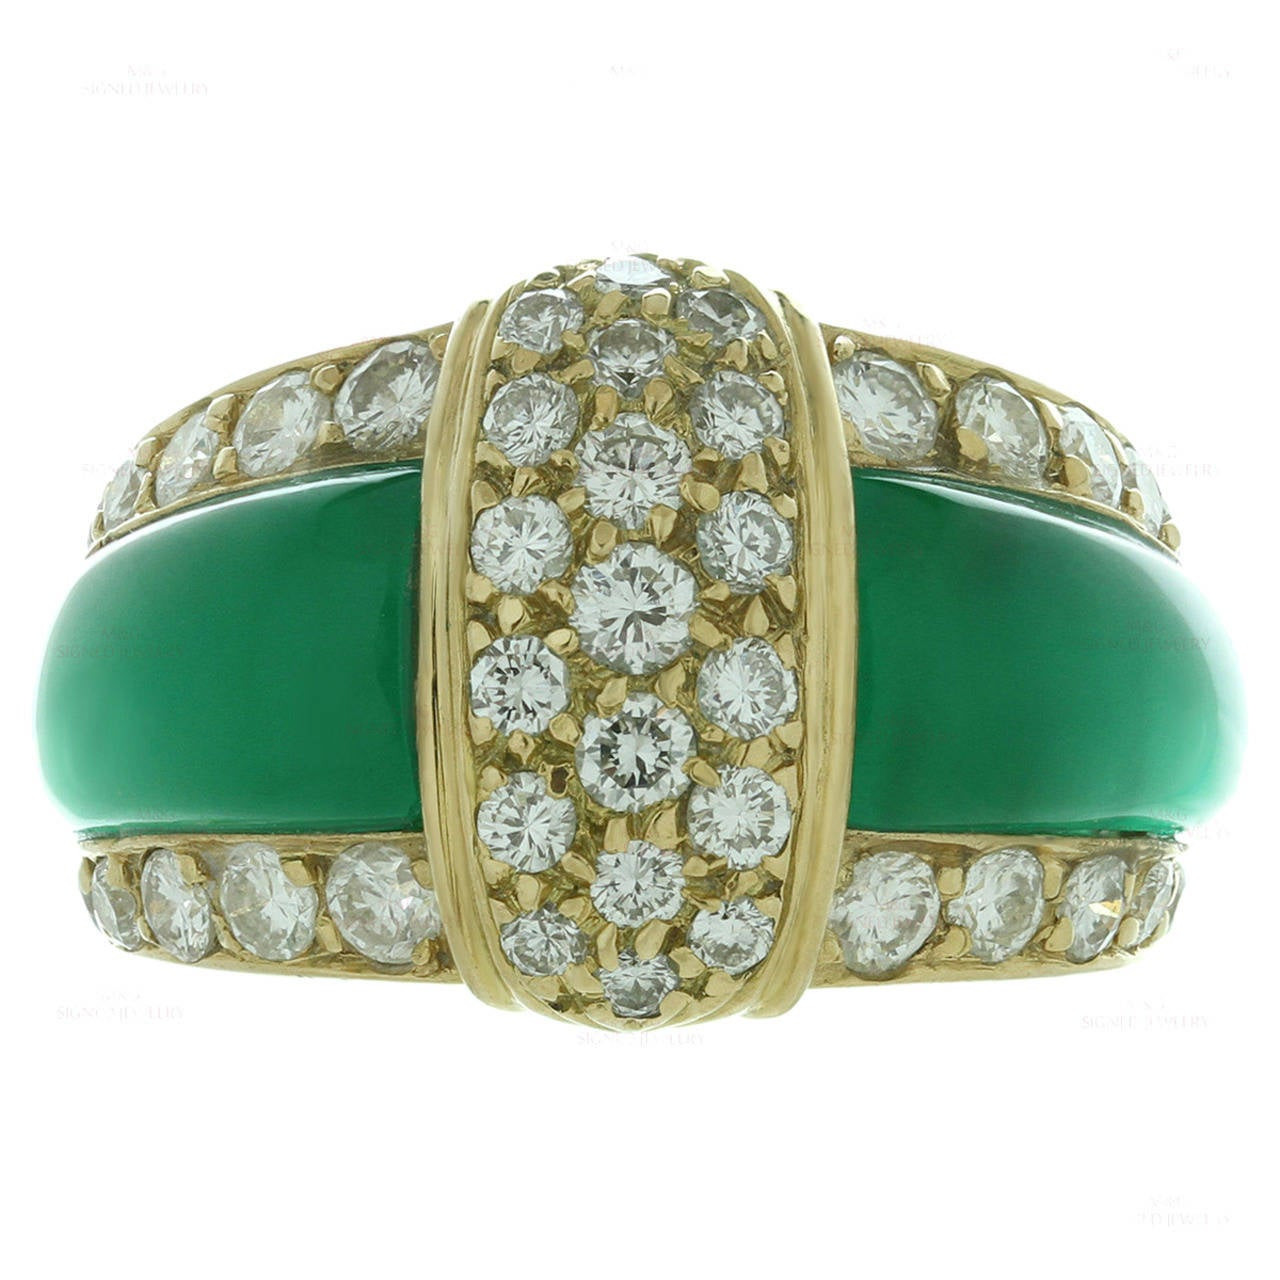 Van cleef amp arpels vca 18k yellow gold ruby cabochon amp diamond - Van Cleef Arpels Green Chrysoprase Diamond Yellow Gold Ring